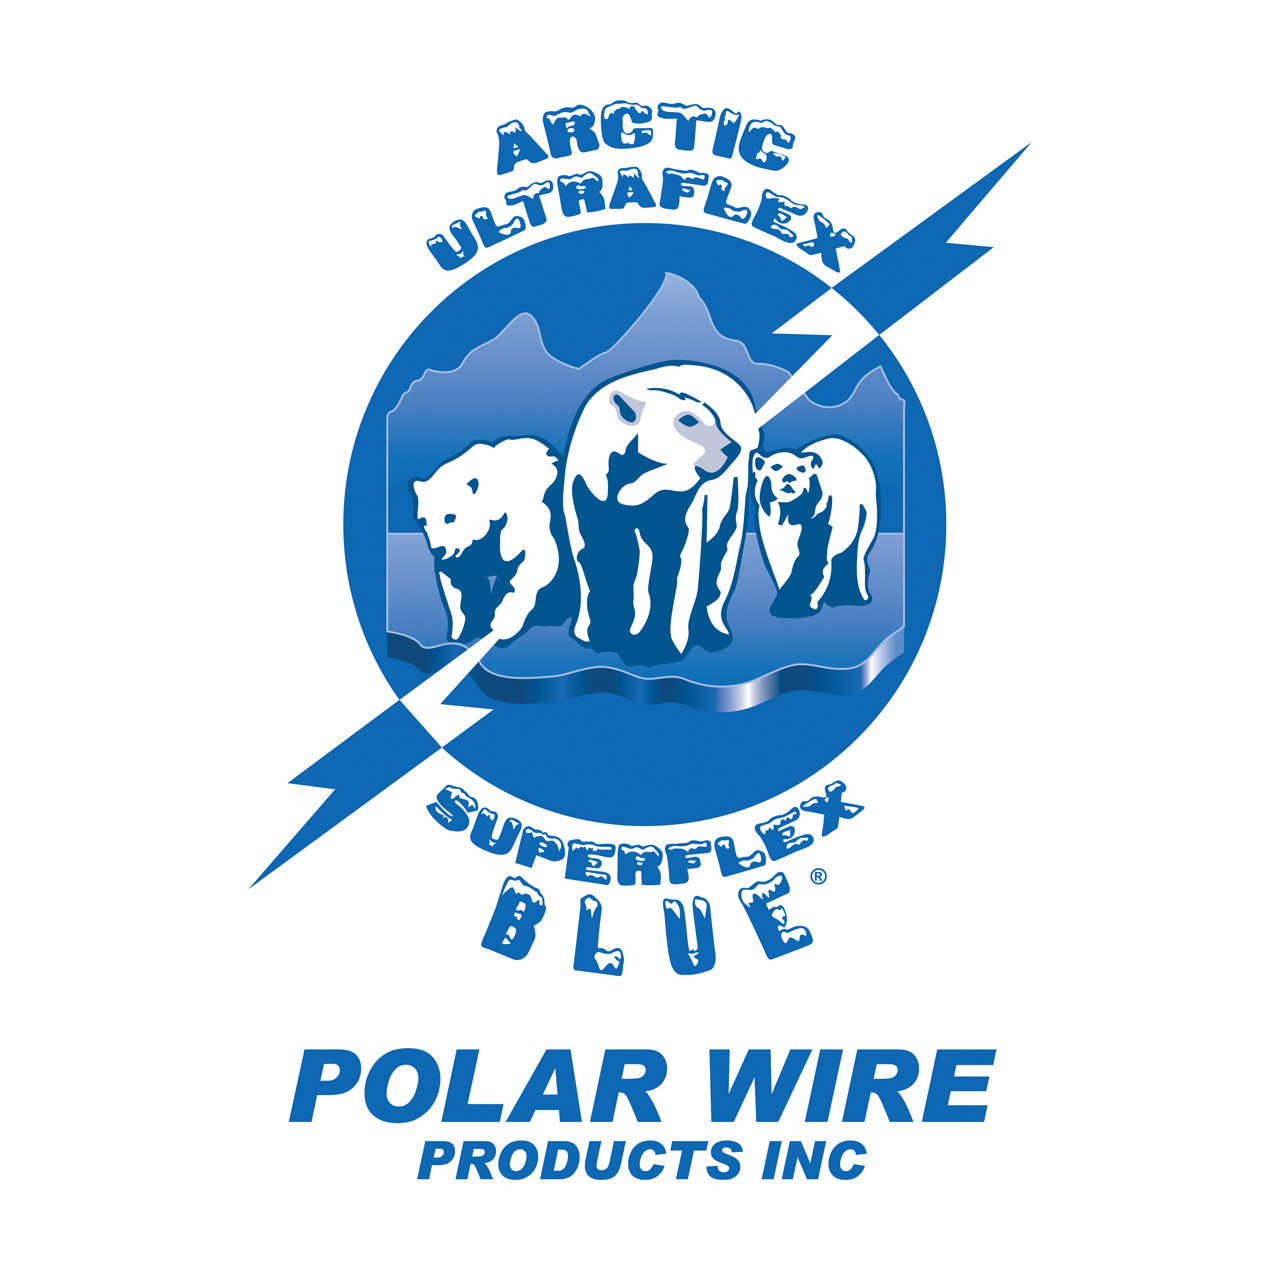 Arctic Ultraflex Blue'''_''_''Î''Ç'ö'''_'ÇÎ⒑΂'''¢ and Arctic Superflex Blue'''_''_''Î''Ç'ö'''_'ÇÎ⒑΂'''¢ 100% copper Class K fine stranded cold weather flexible wire and cable is manufactured exclusively by Polar Wire Products. Made in the USA